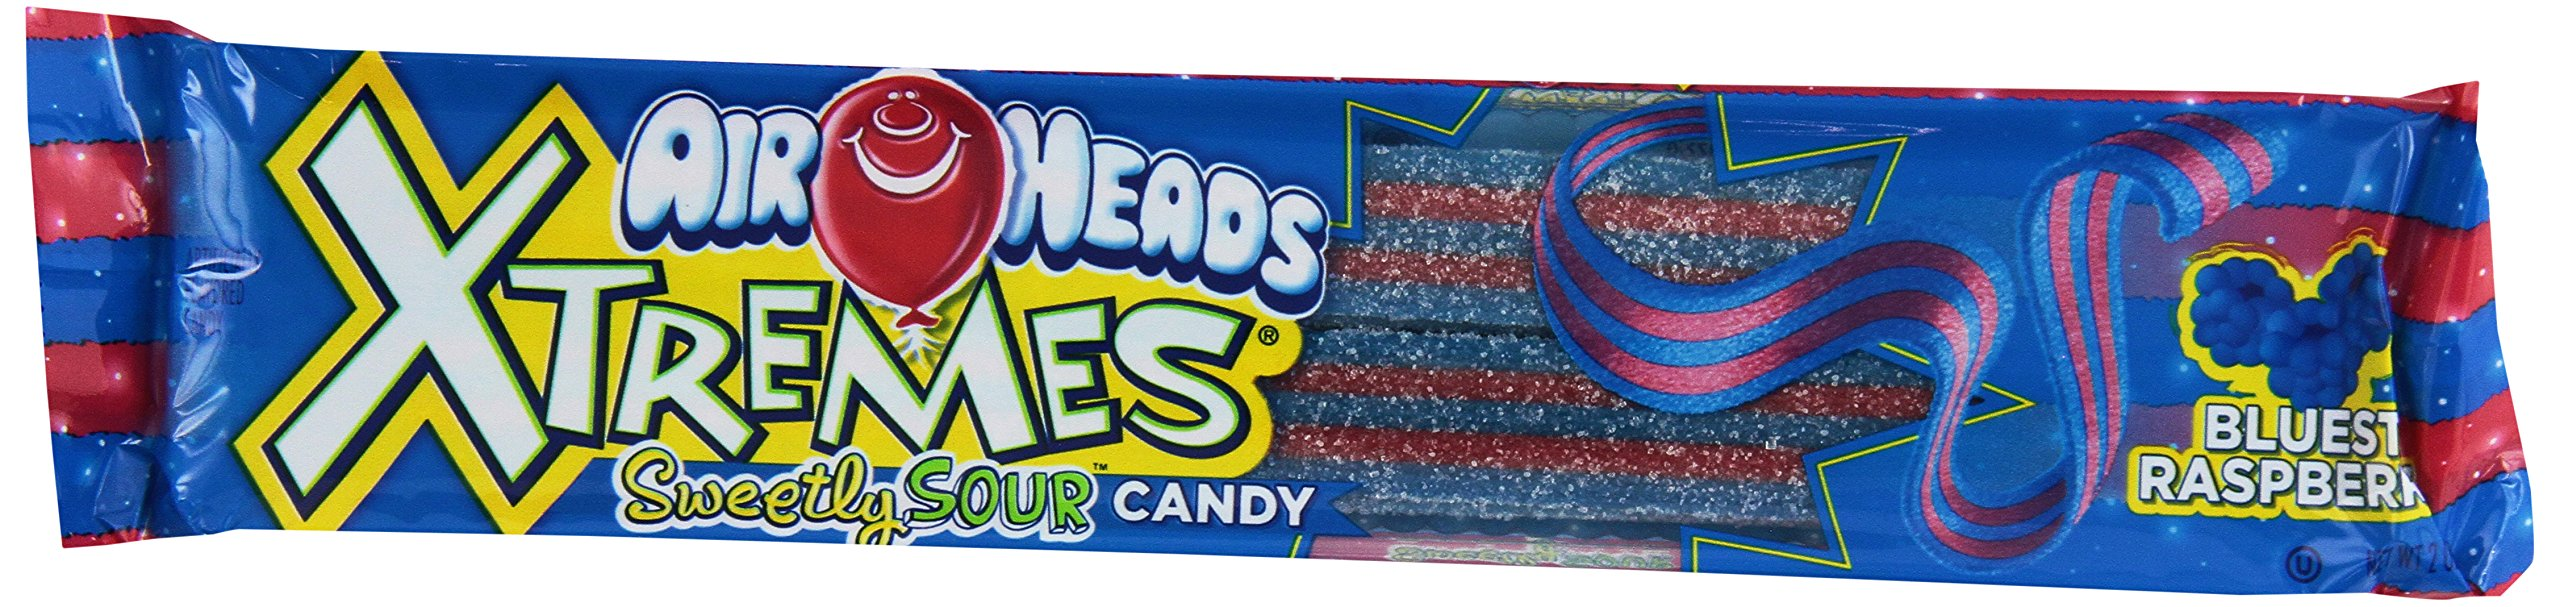 Airheads Xtremes Sour Candy, Bluest Raspberry, 2 Ounce (Pack of 18)